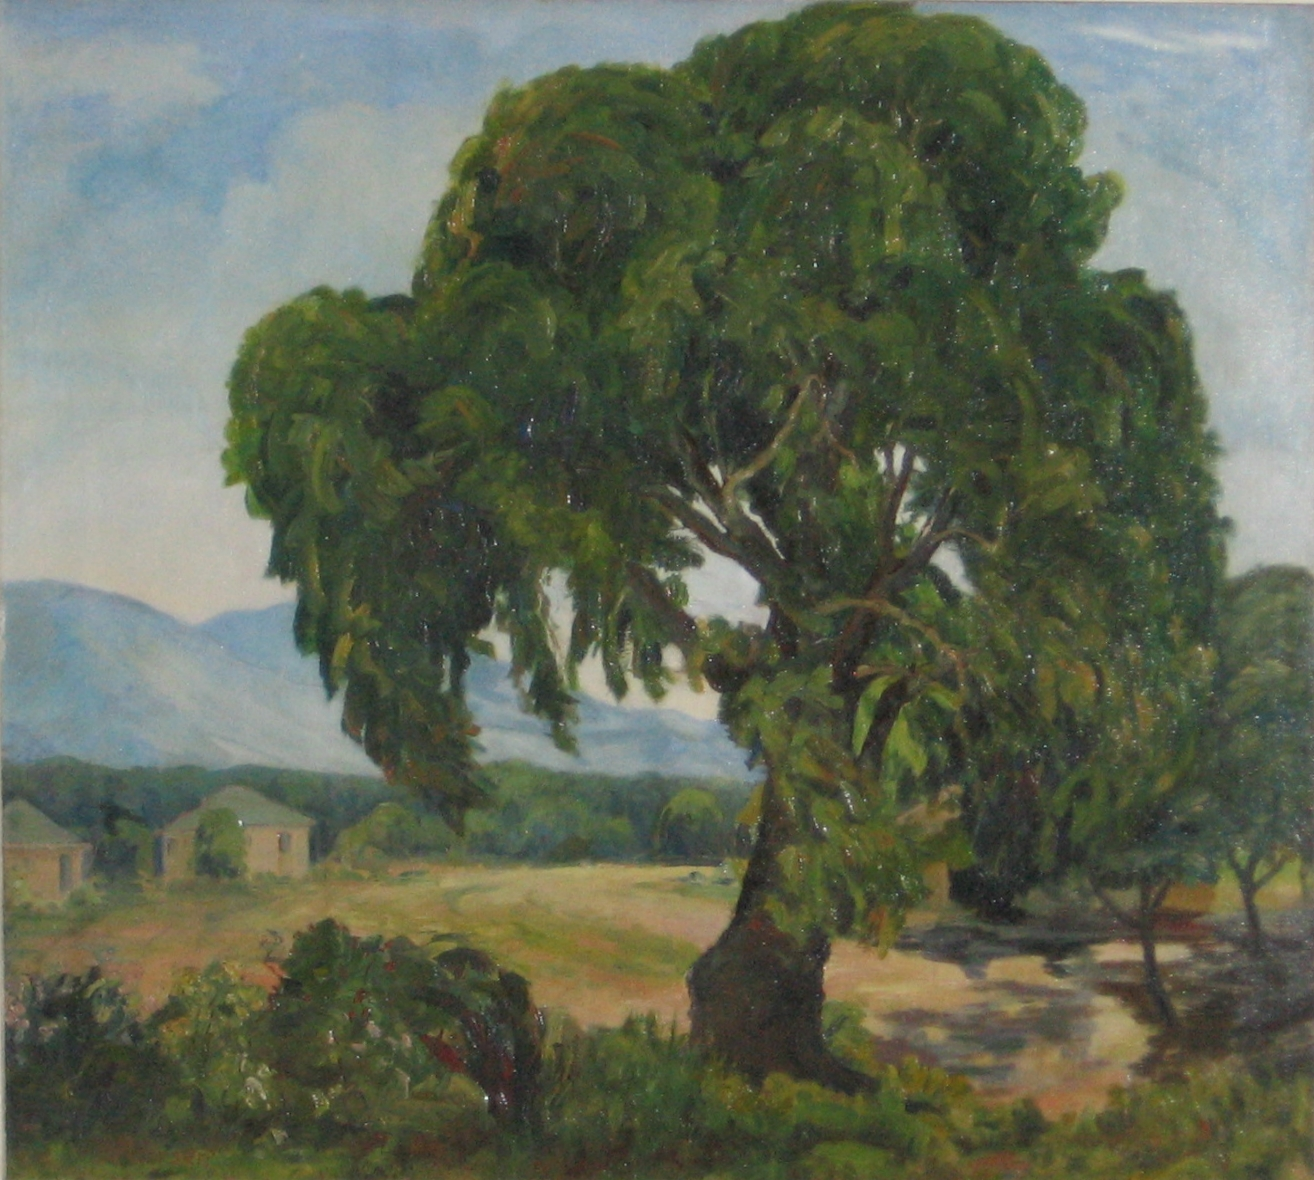 The Green Tree